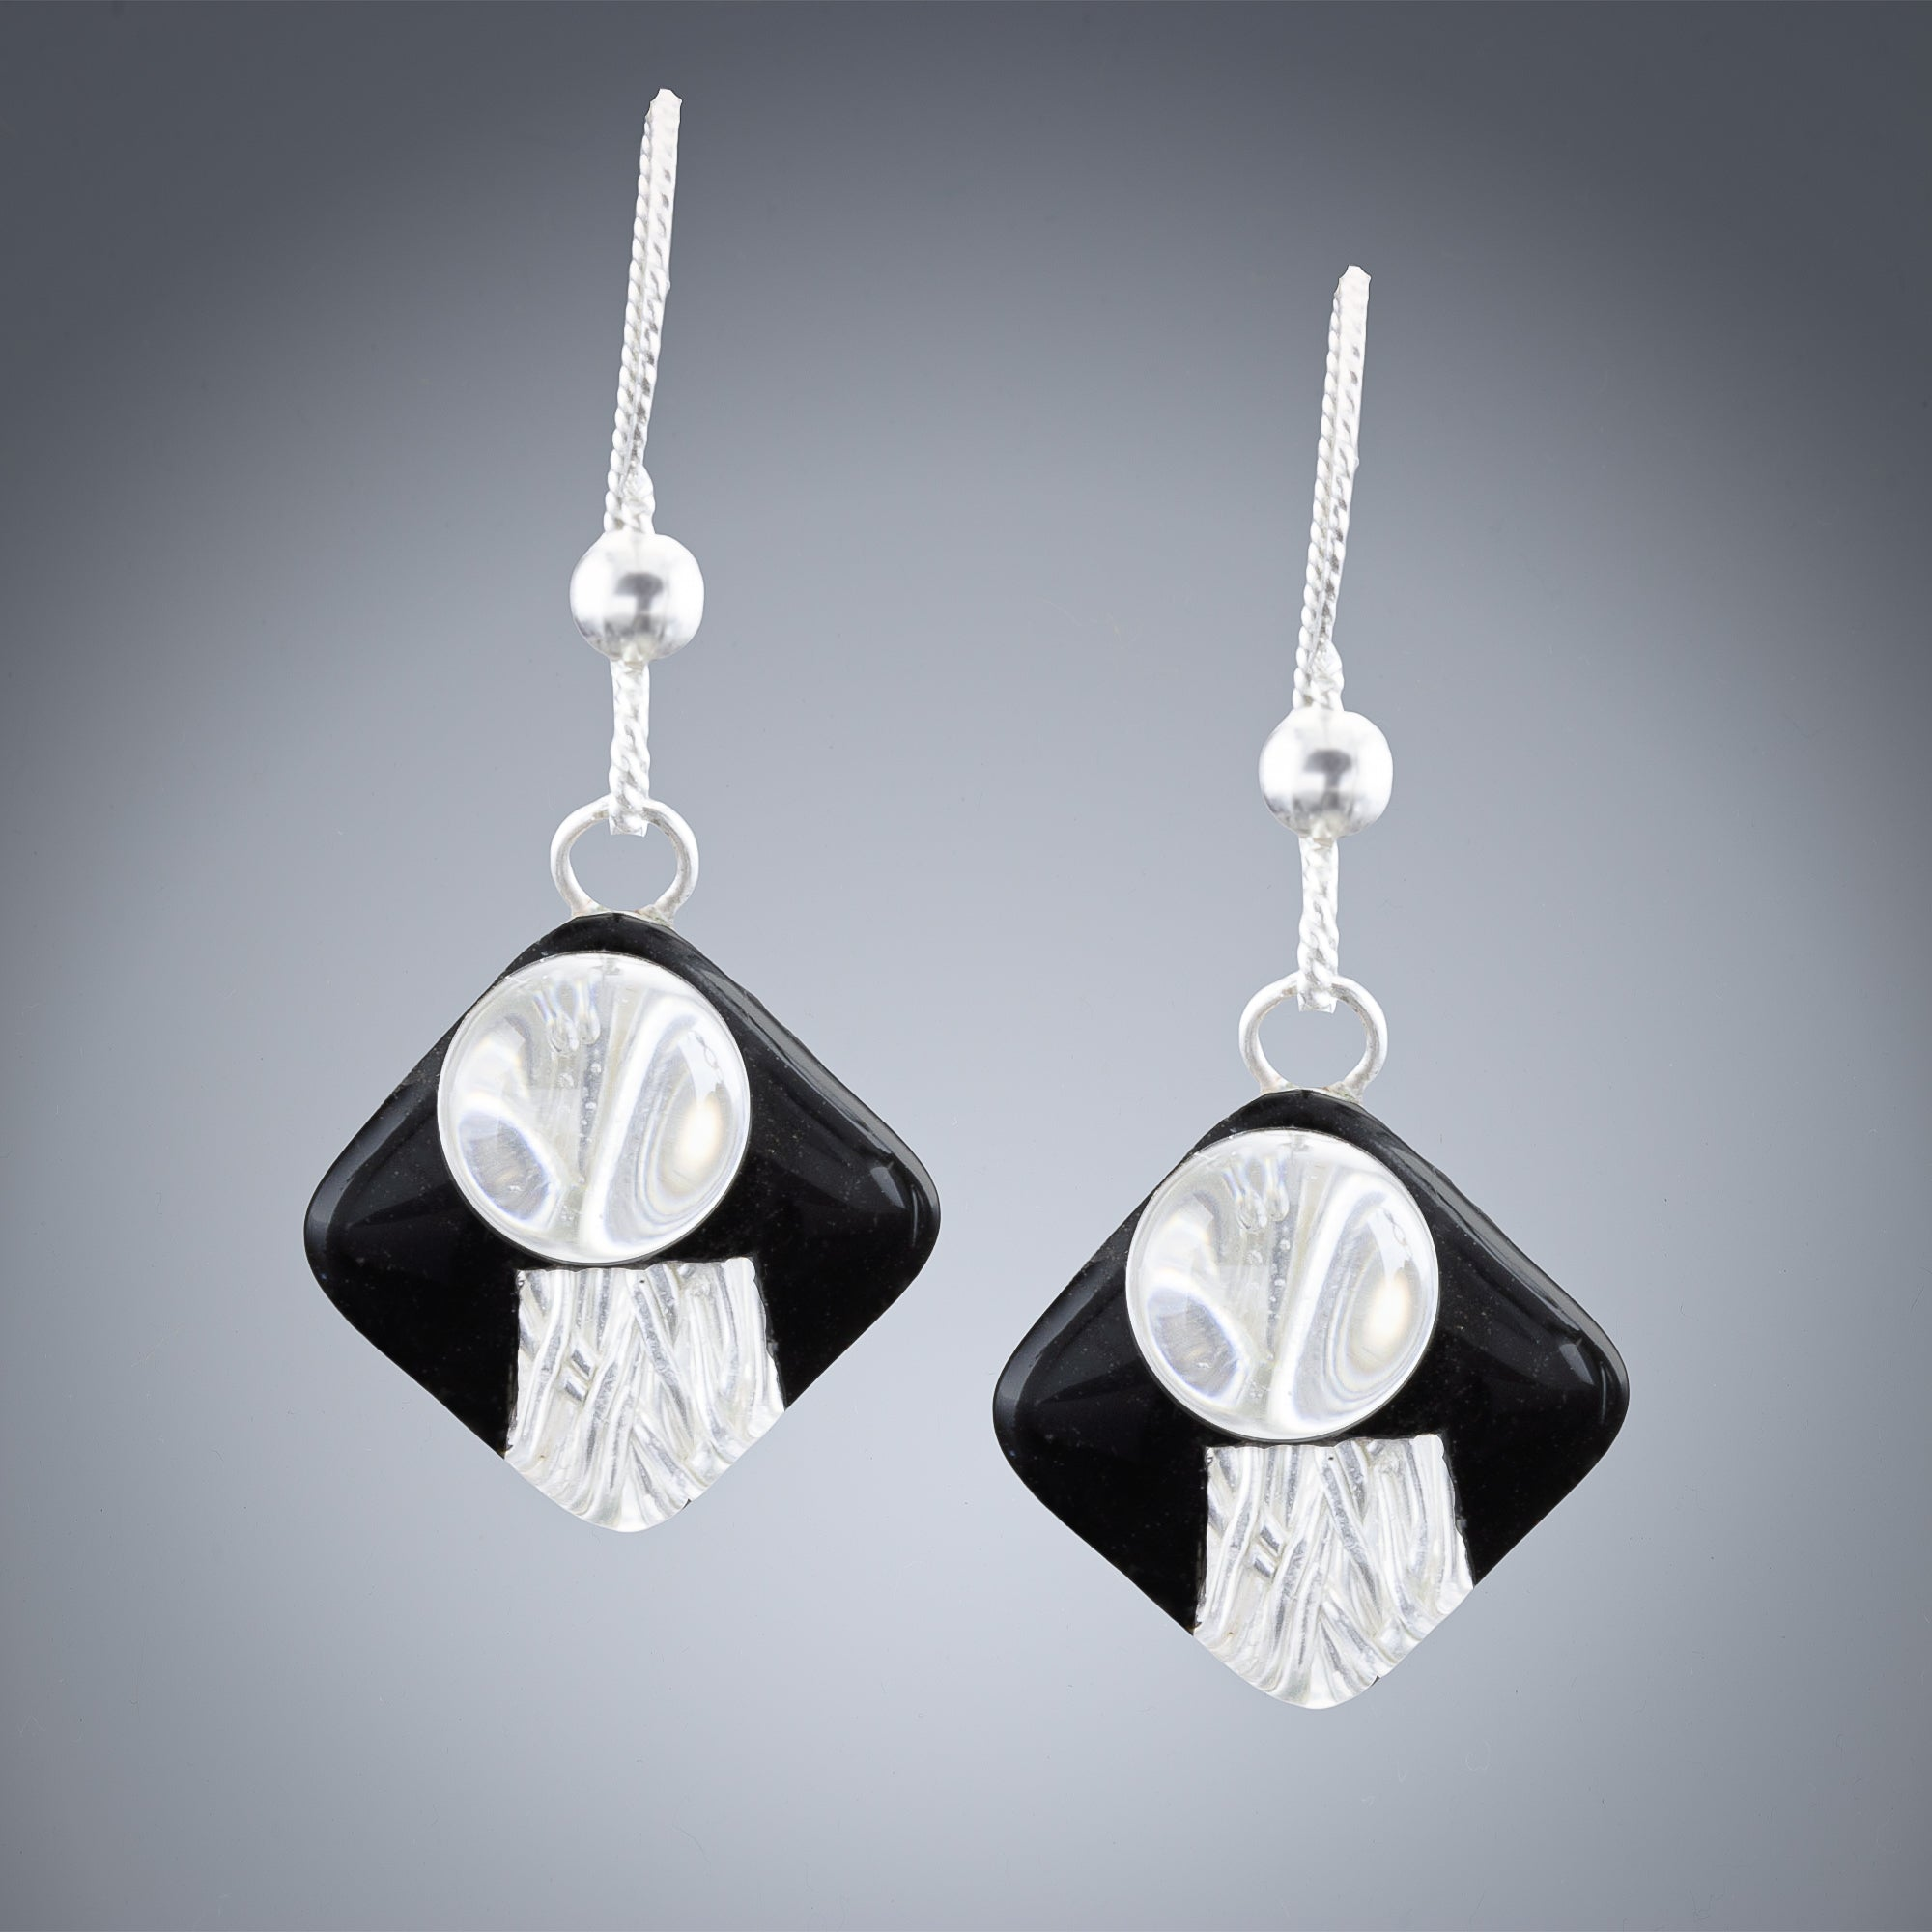 Handwoven Black and Silver Art Deco Inspired Earrings in Sterling Silver